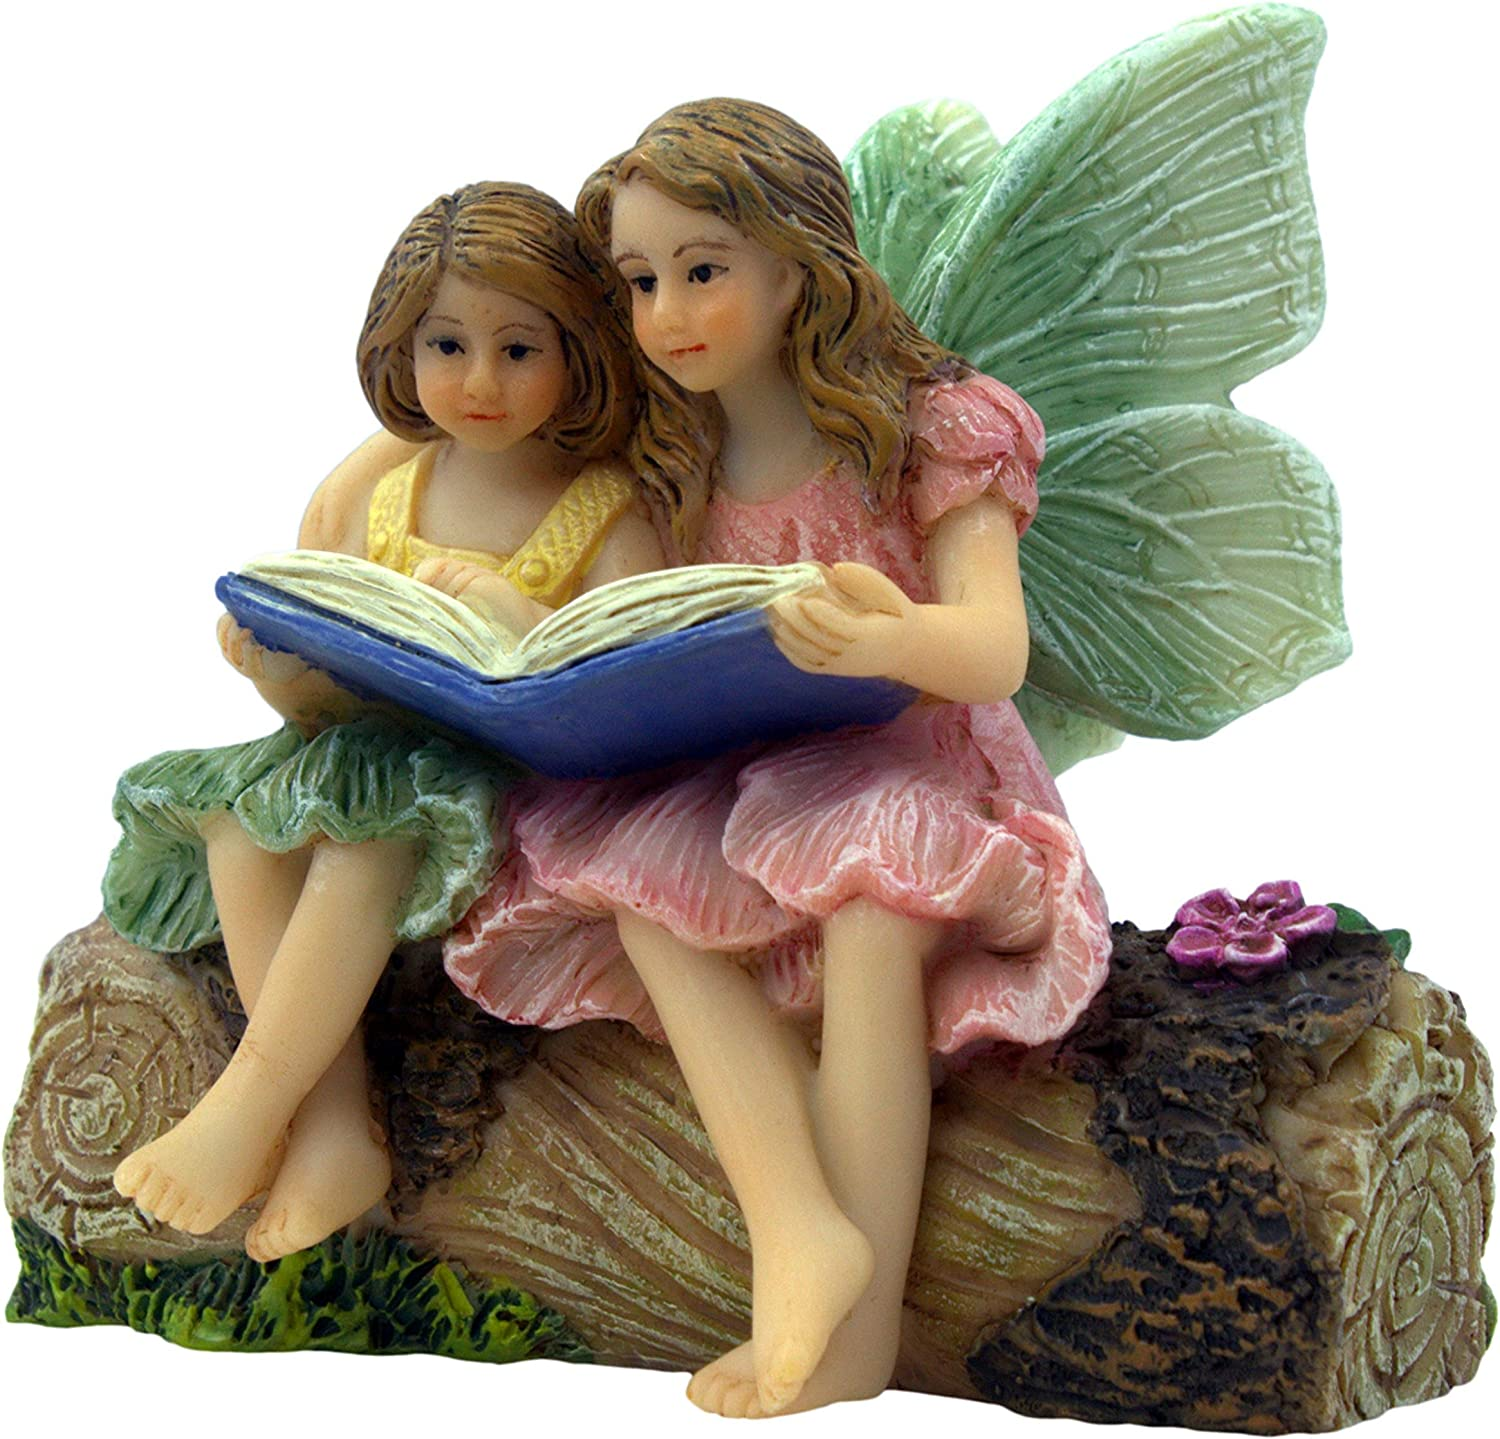 PRETMANNS Fairy Garden Fairies – Fairy Figurines – 2 Adorable Fairies Sitting on a Stump Reading a Book - Storytime Fairies - Fairy Garden Supplies 1 Piece